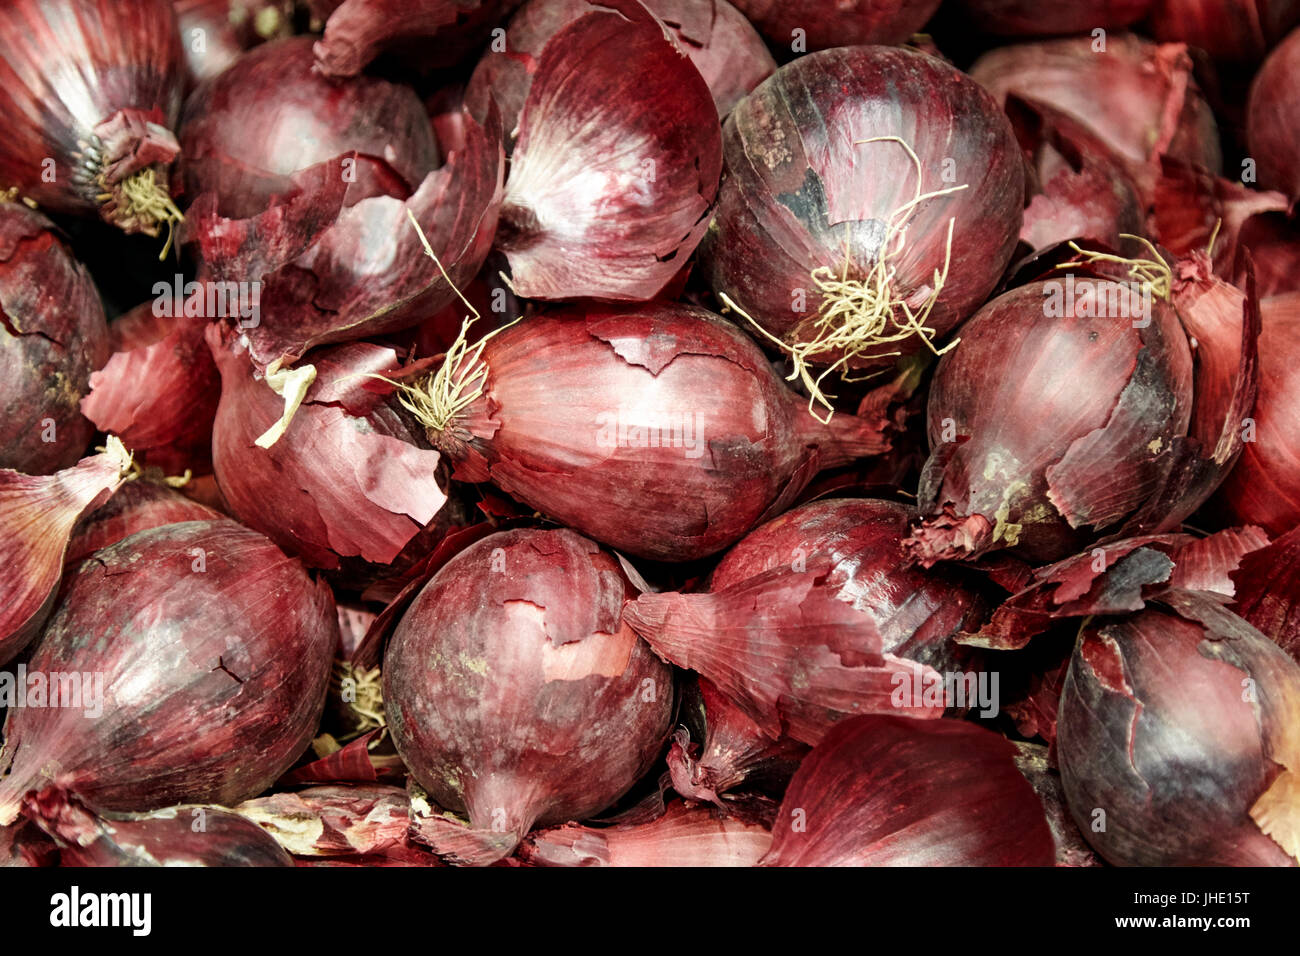 fresh red onions - Stock Image